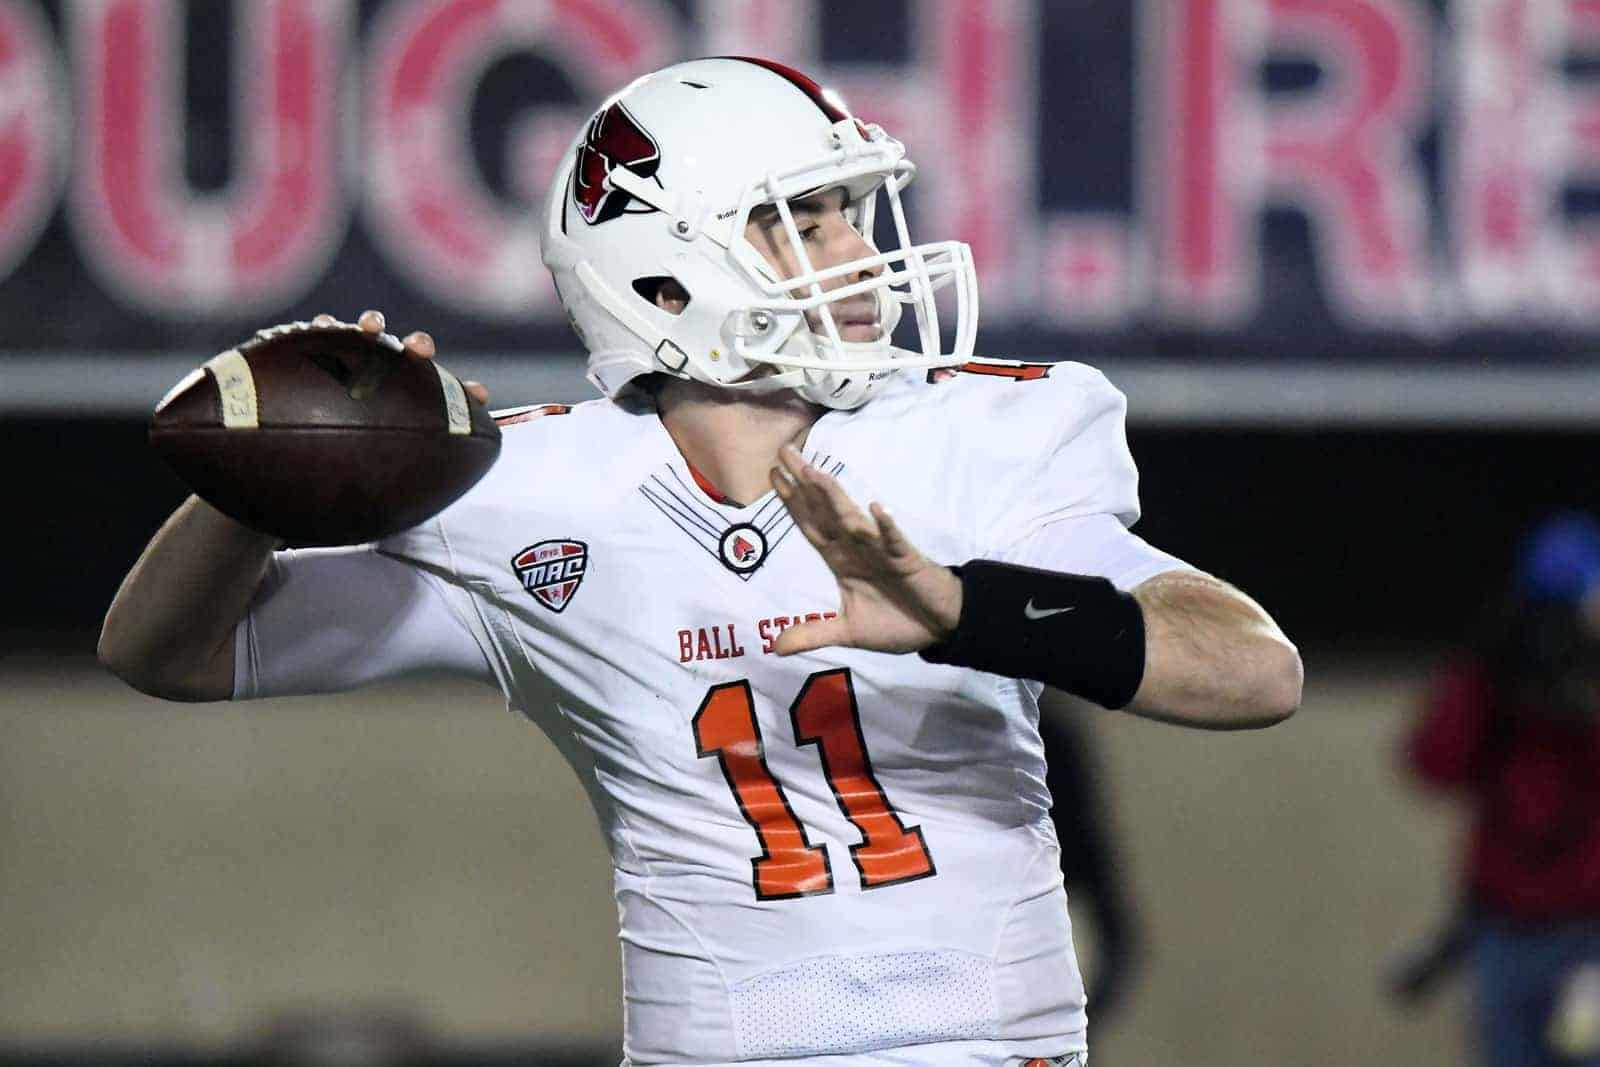 College Football Schedule: Ball State